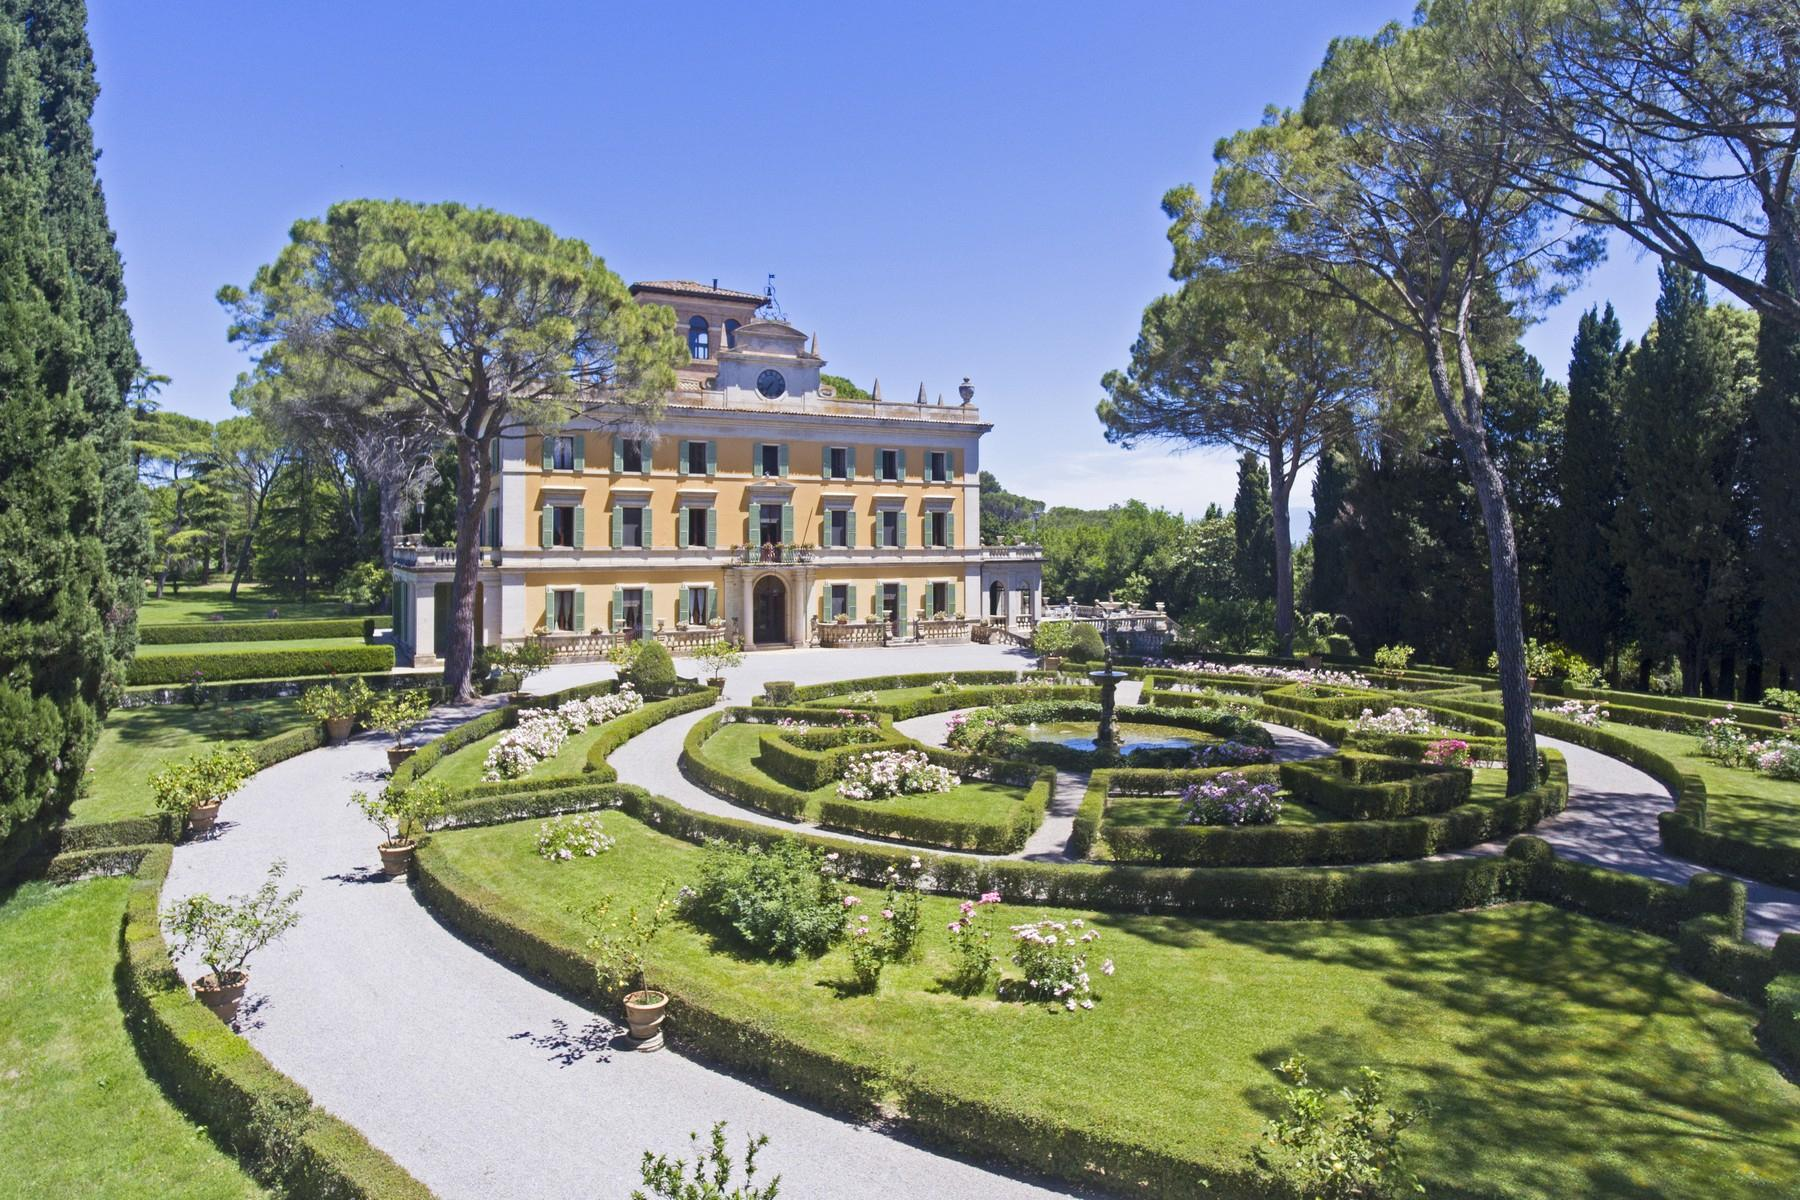 Magnificent historical villa with typical italian garden in Umbria - 1